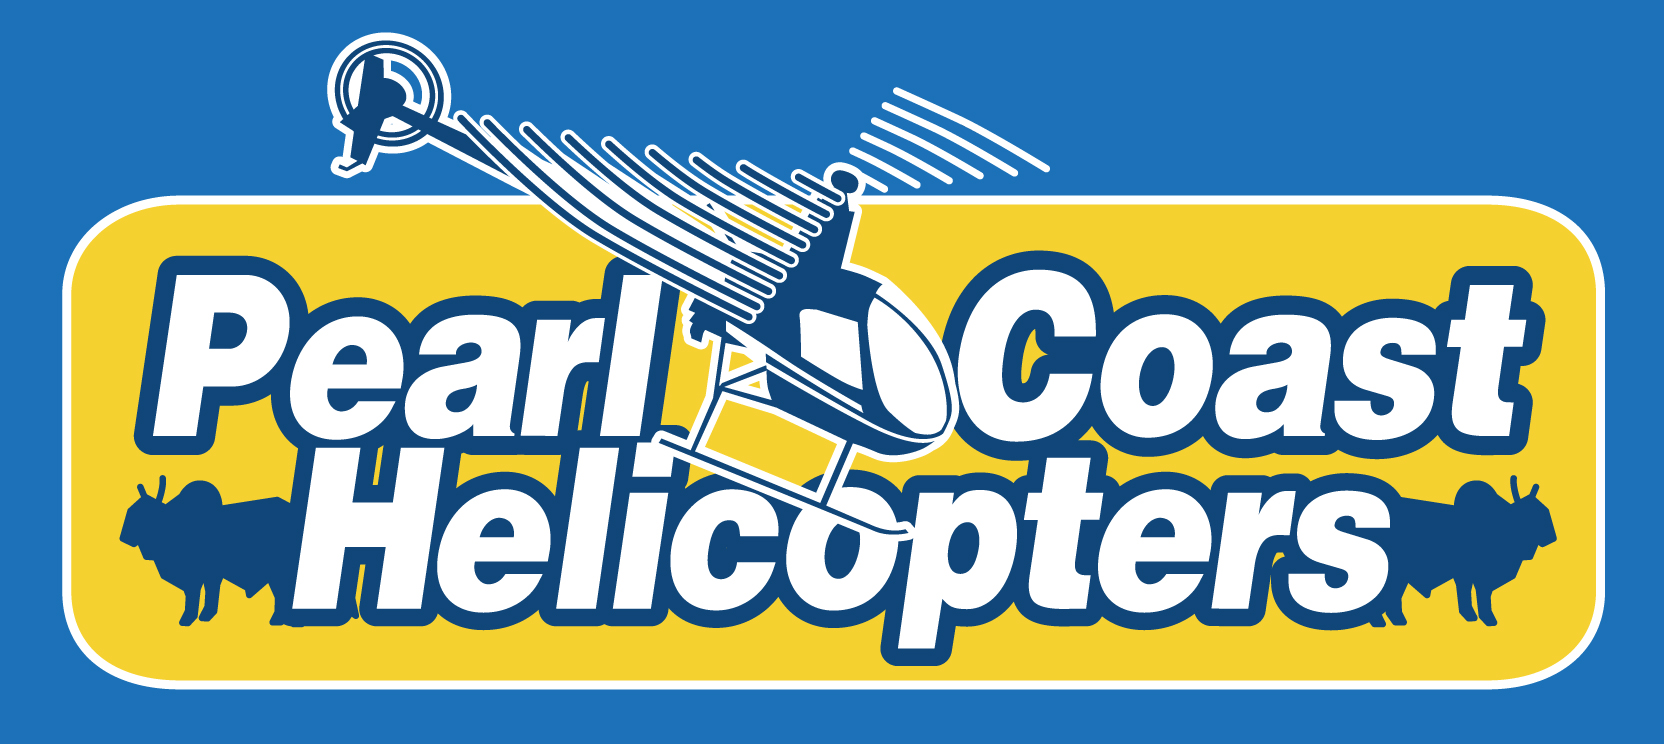 Pearl Coast Helicopters